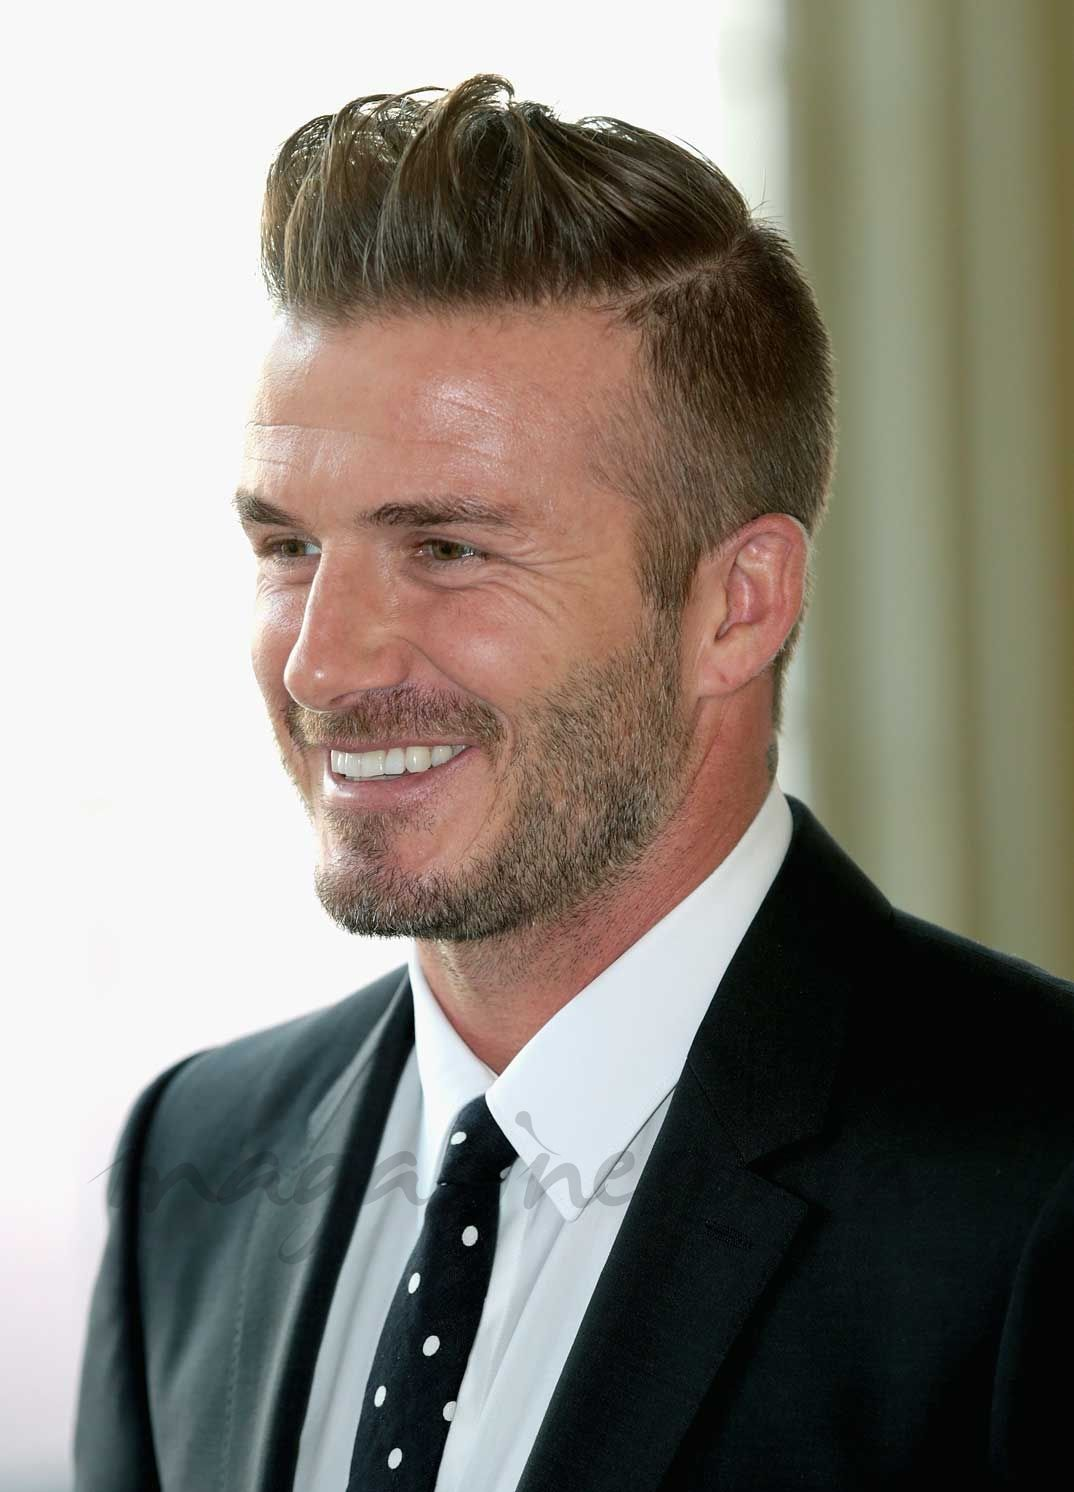 david beckham david beckham pinterest coiffure homme coiffures et hommes. Black Bedroom Furniture Sets. Home Design Ideas